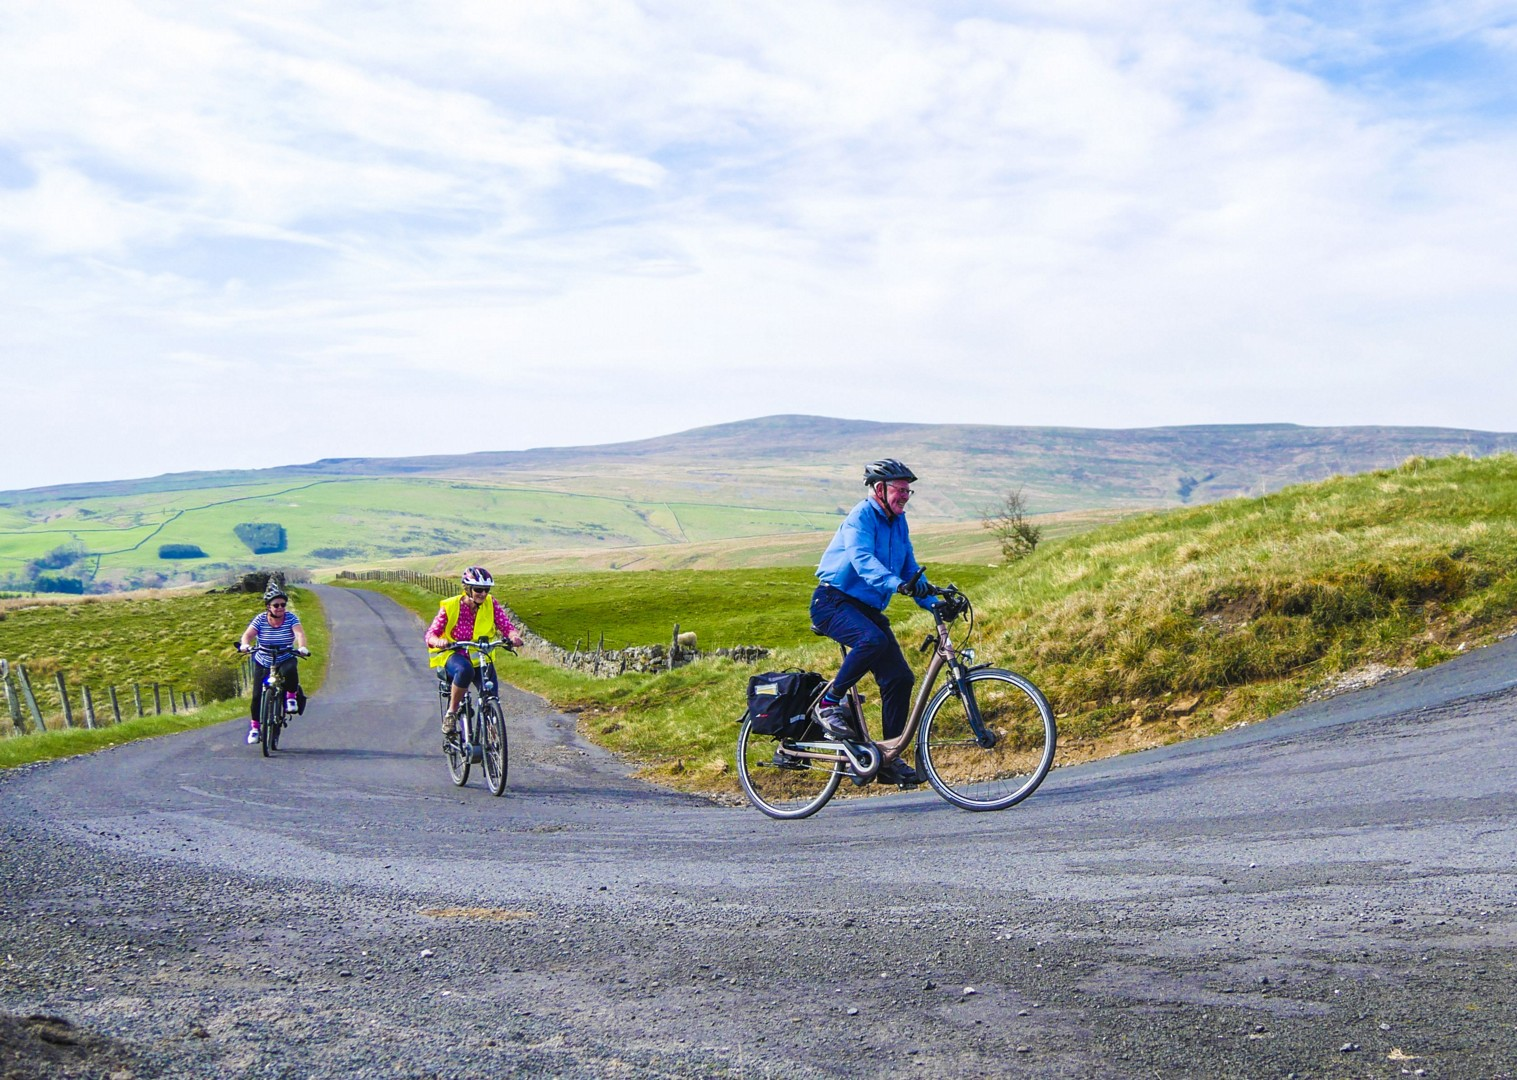 tour-for-all-ages-skedaddle-england-bike-holiday-amazing-experiences.jpg - UK - C2C - Coast to Coast 3 Days Cycling - Self-Guided Leisure Cycling Holiday - Leisure Cycling